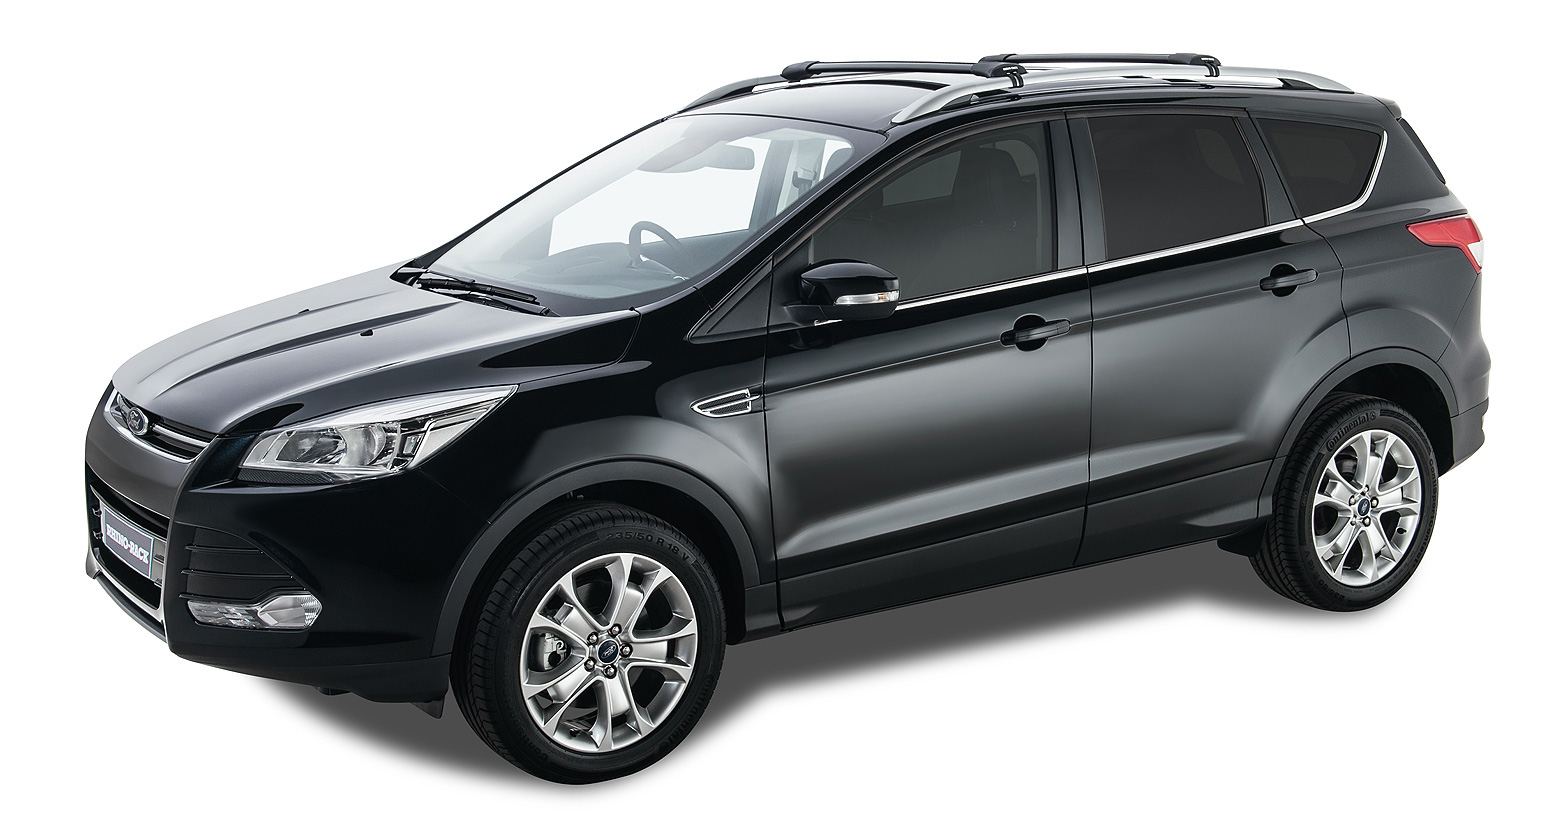 Ford kuga 4dr suv with roof rails 05 13 on view options